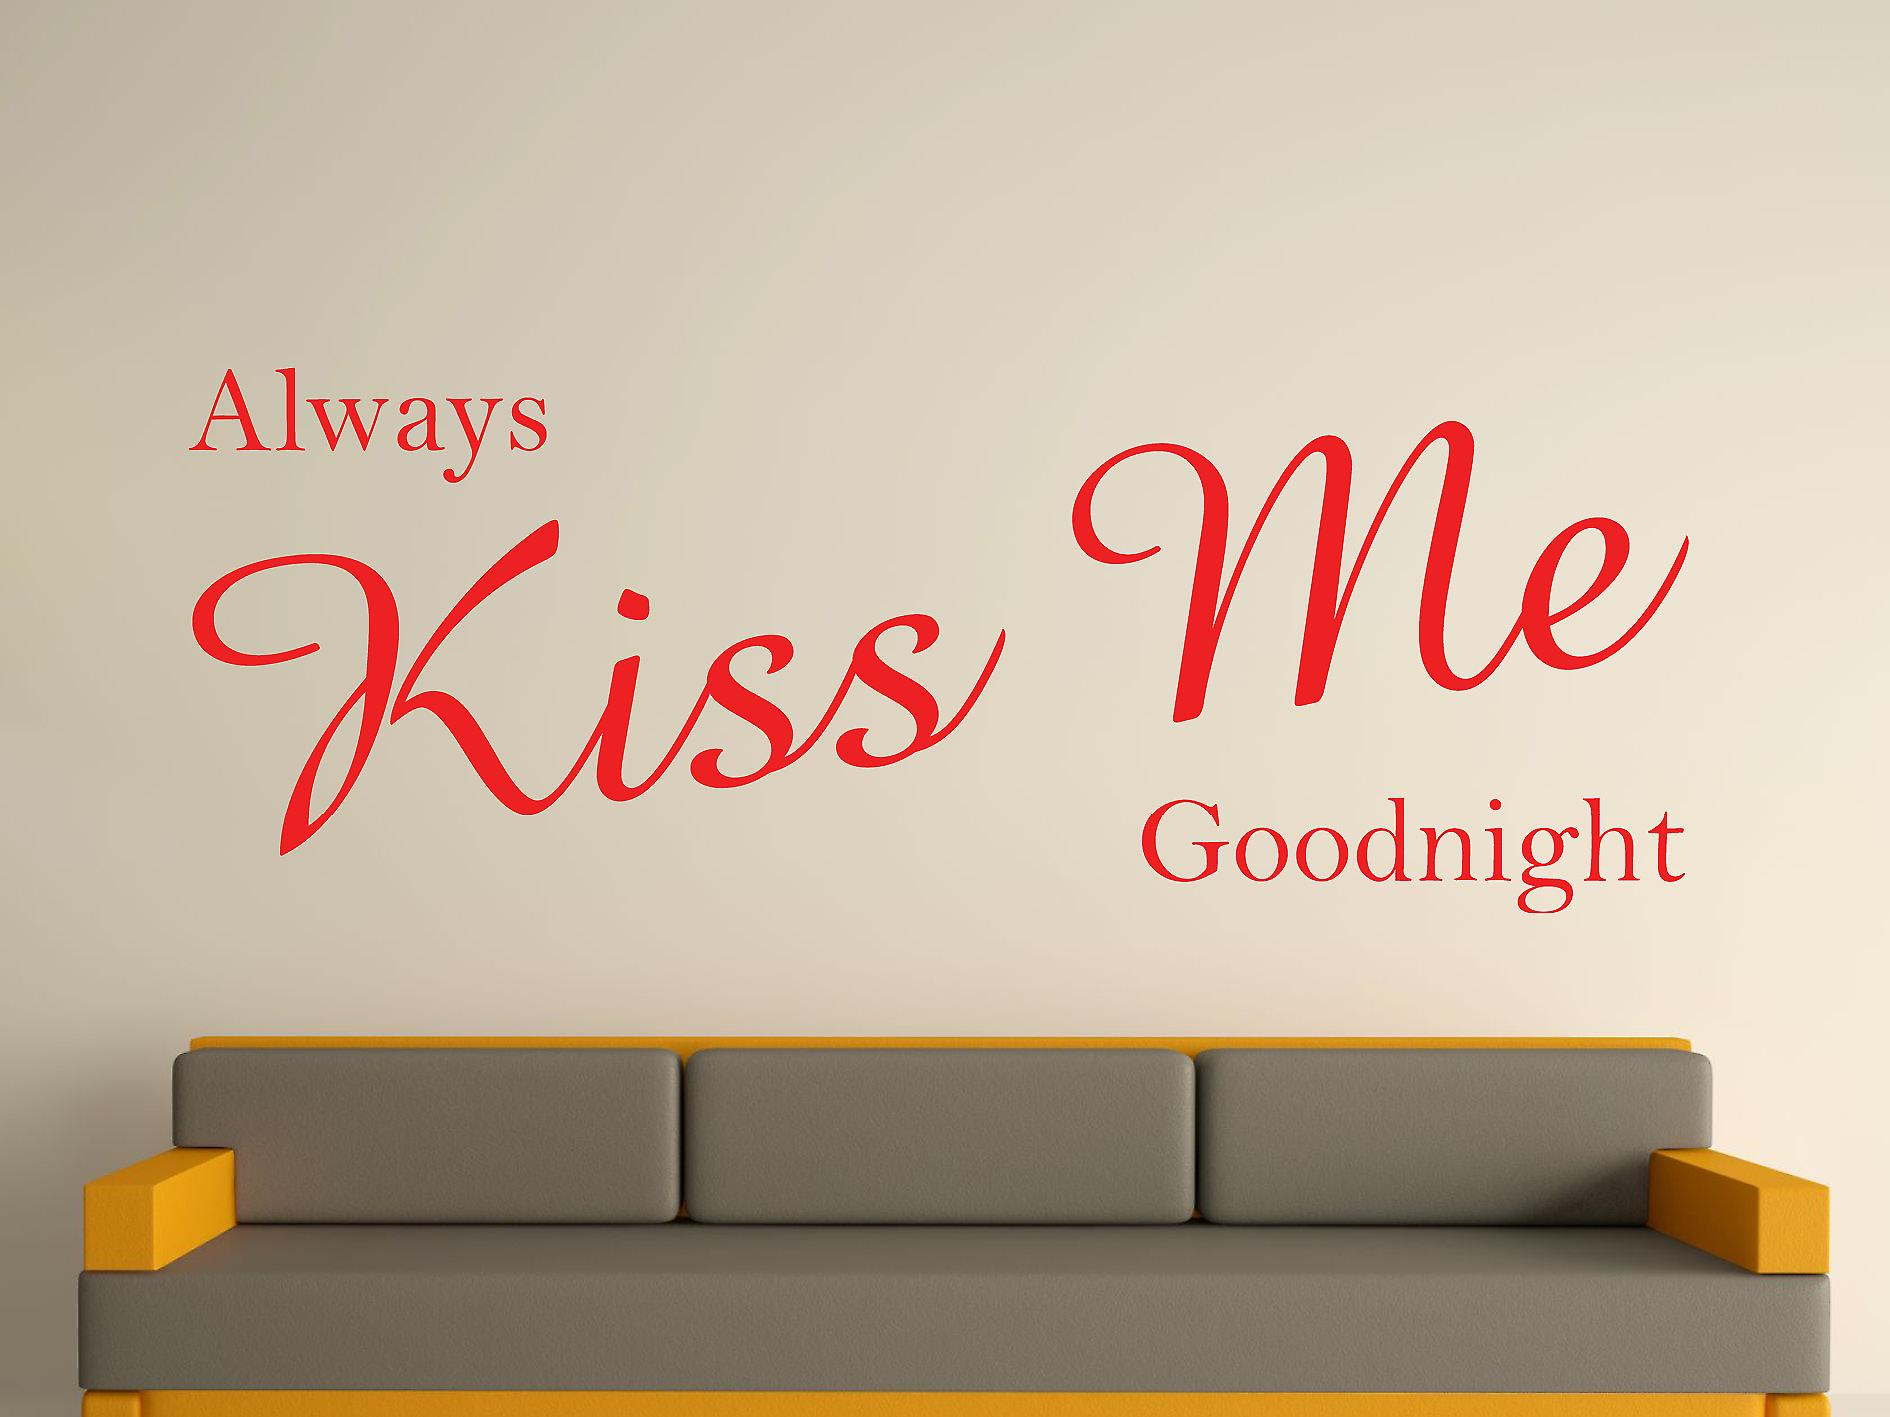 Always Kiss Me Goodnight Wall Art Sticker - Tomato Red